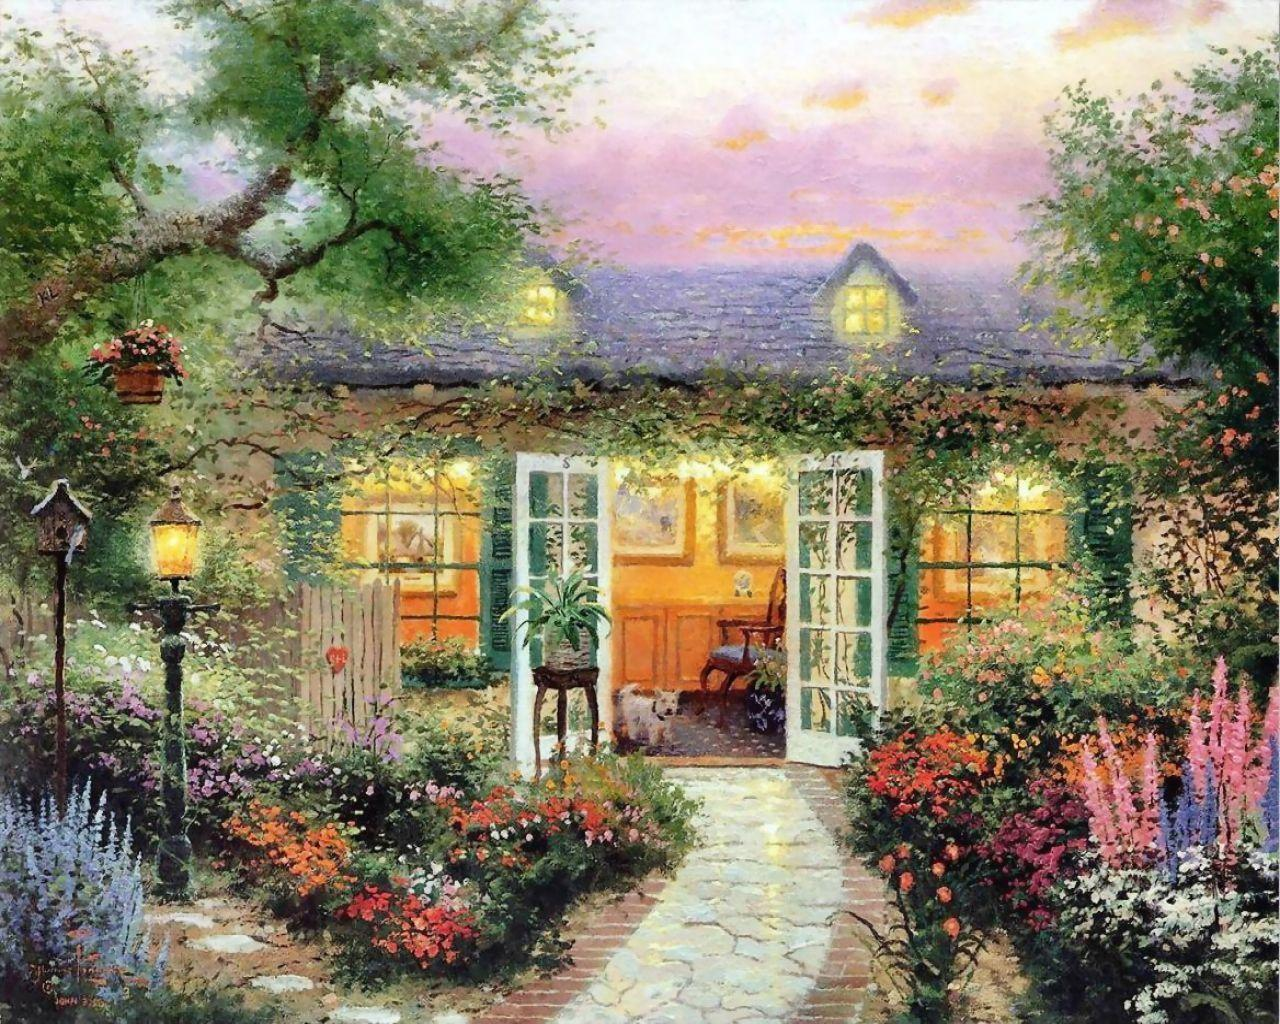 Thomas kinkade wallpapers for desktop wallpaper cave for Home wallpaper 0